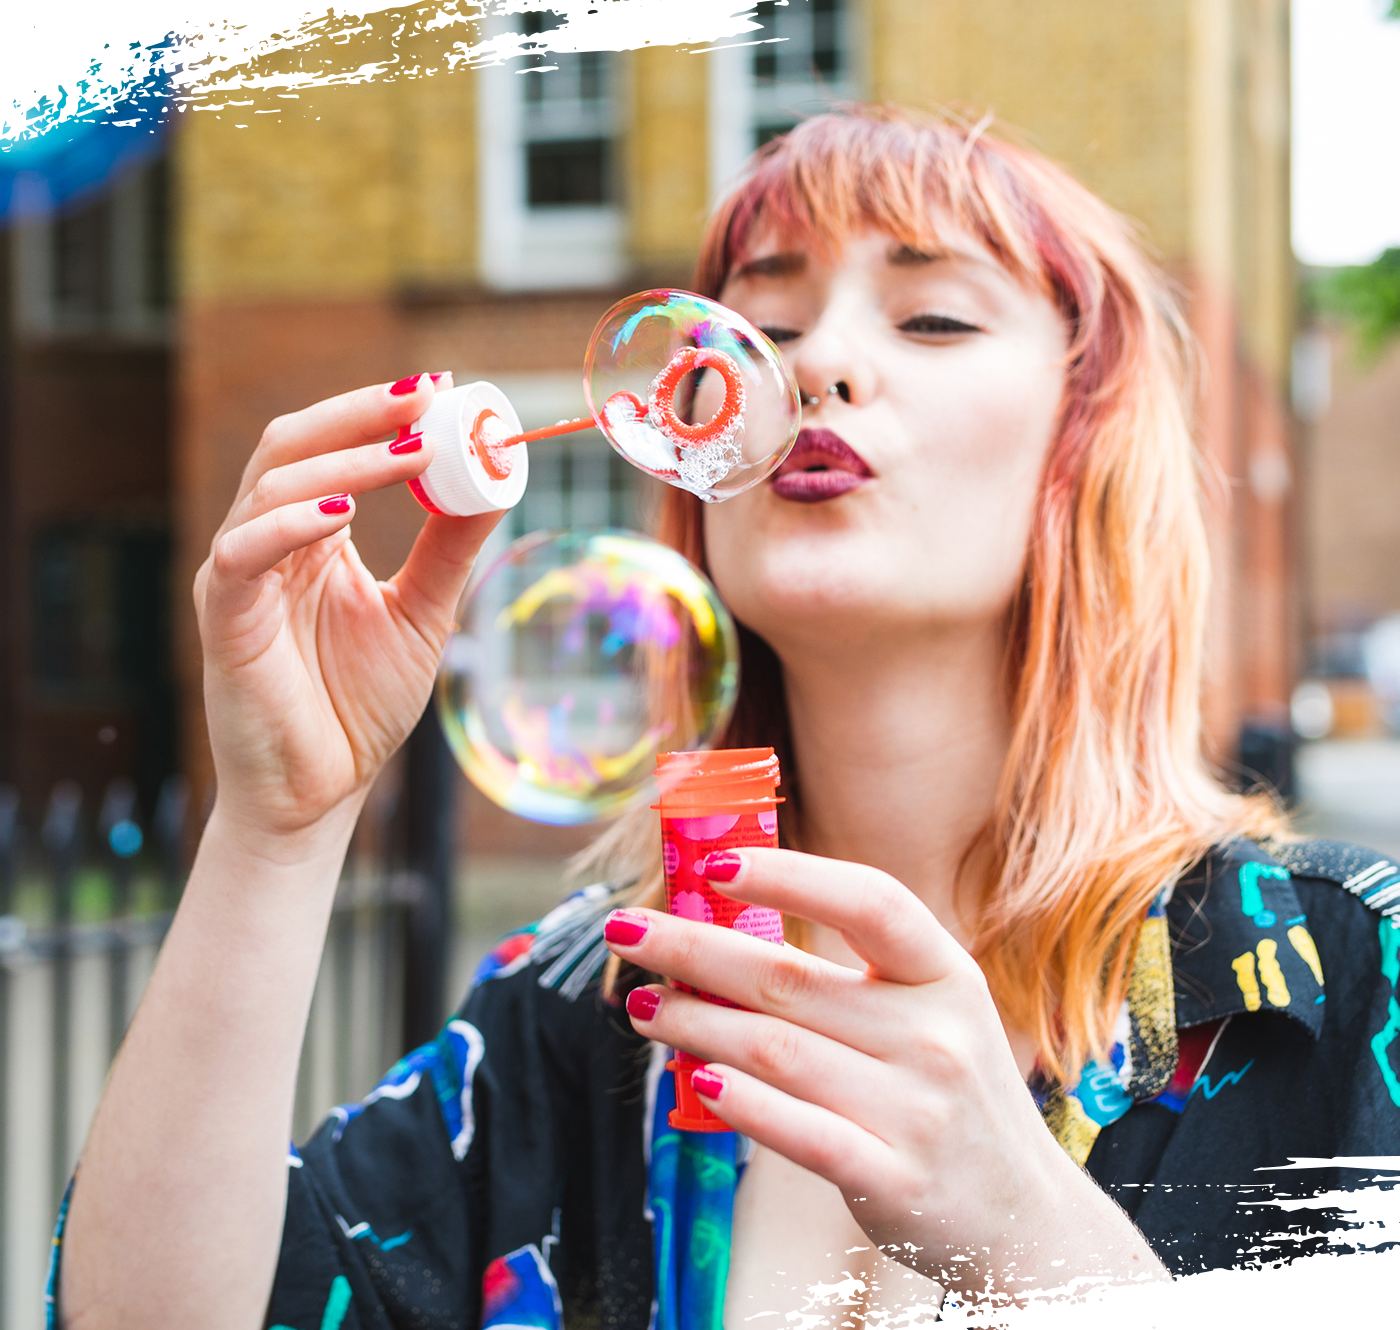 Image of woman with coloured hair blowing bubbles